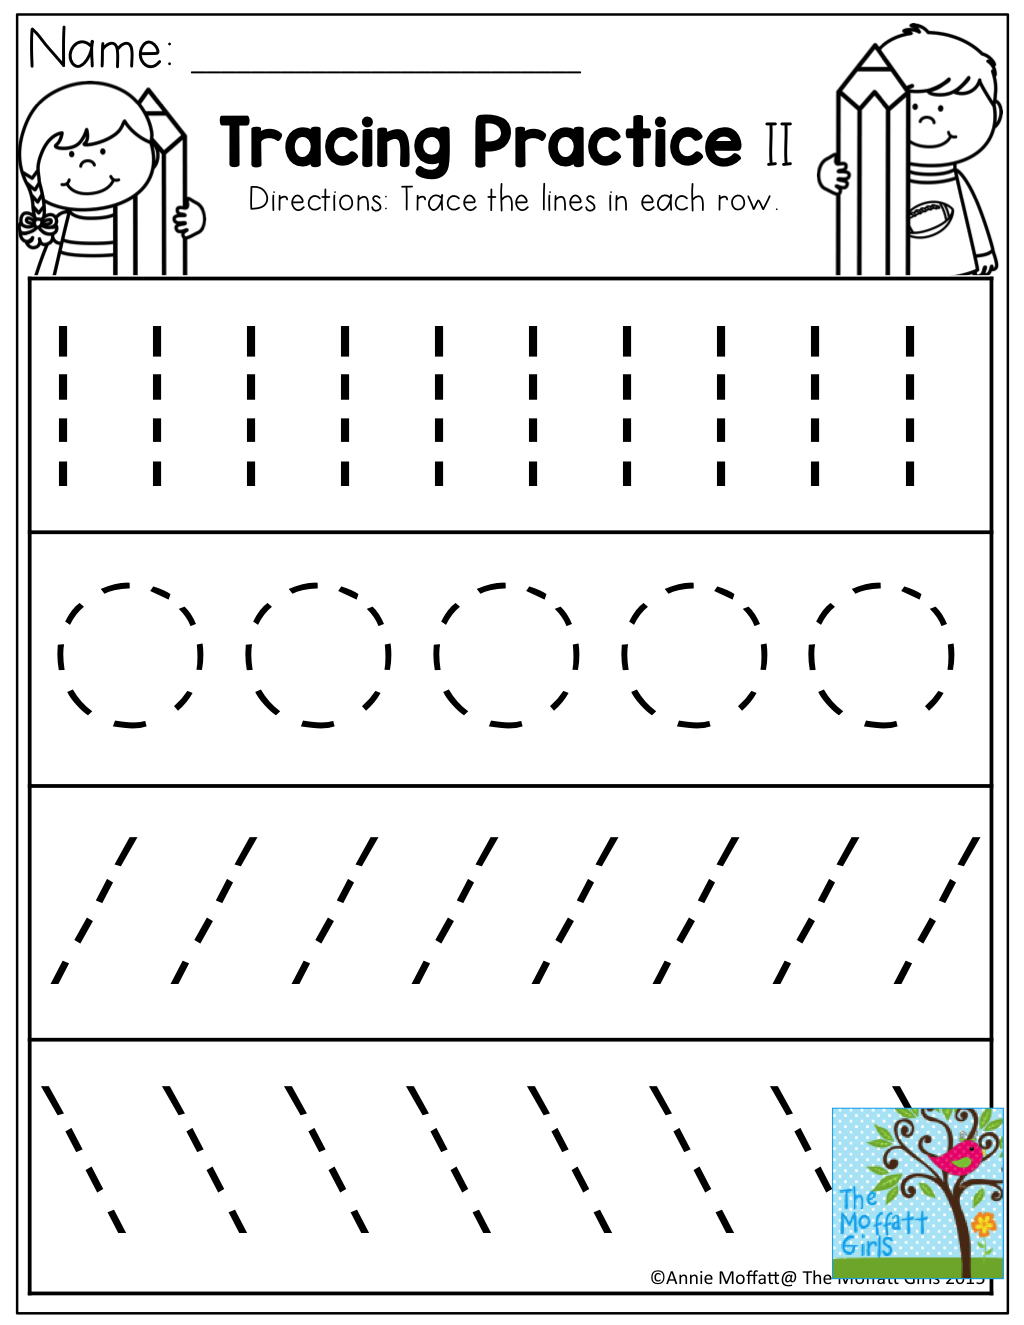 Worksheets Pre Kindergarten Worksheets tracing practice tons of printable for pre k kindergarten 1st grade